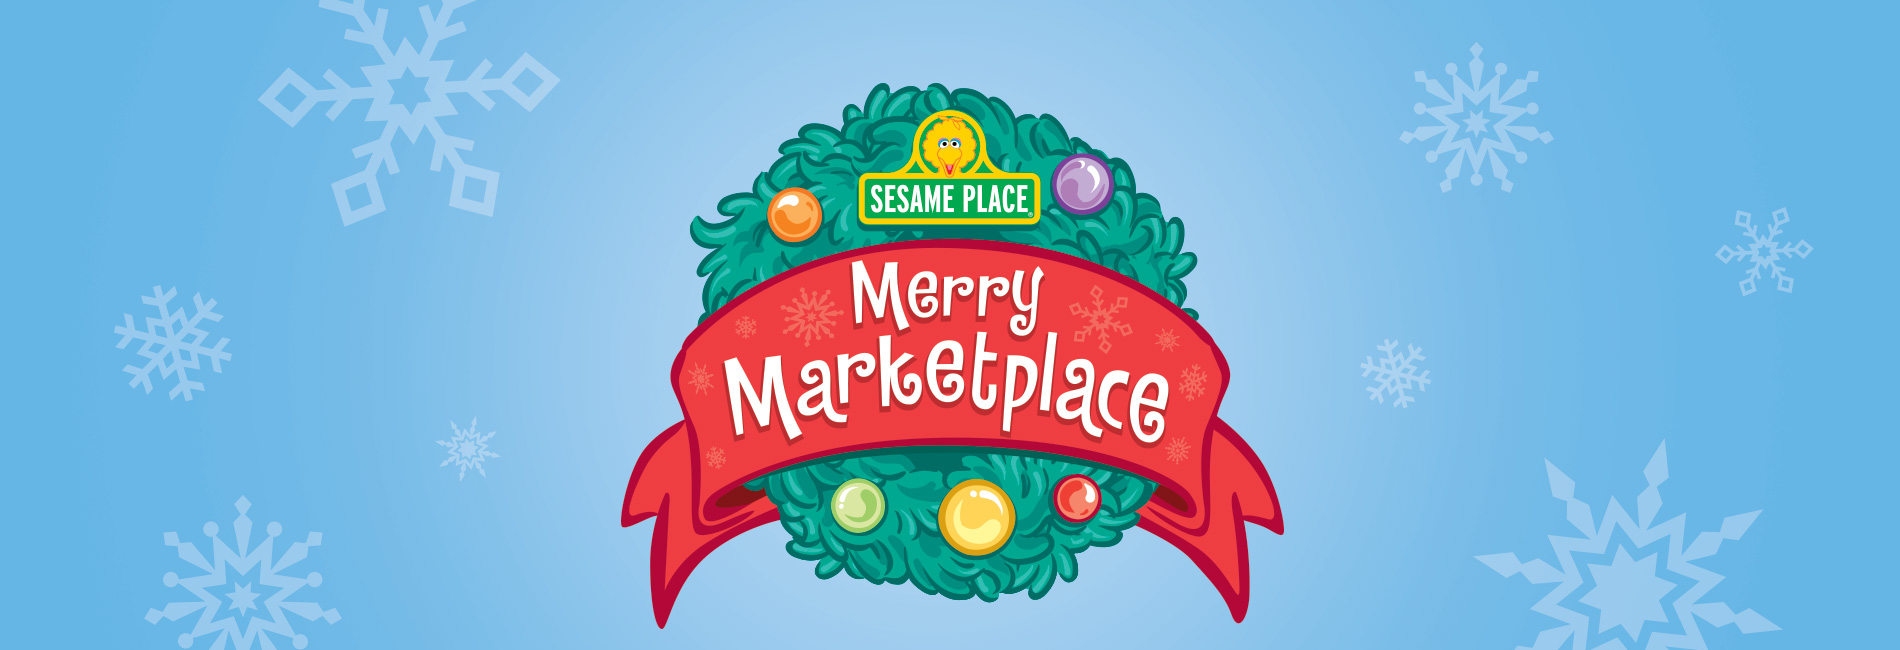 Merry Marketplace